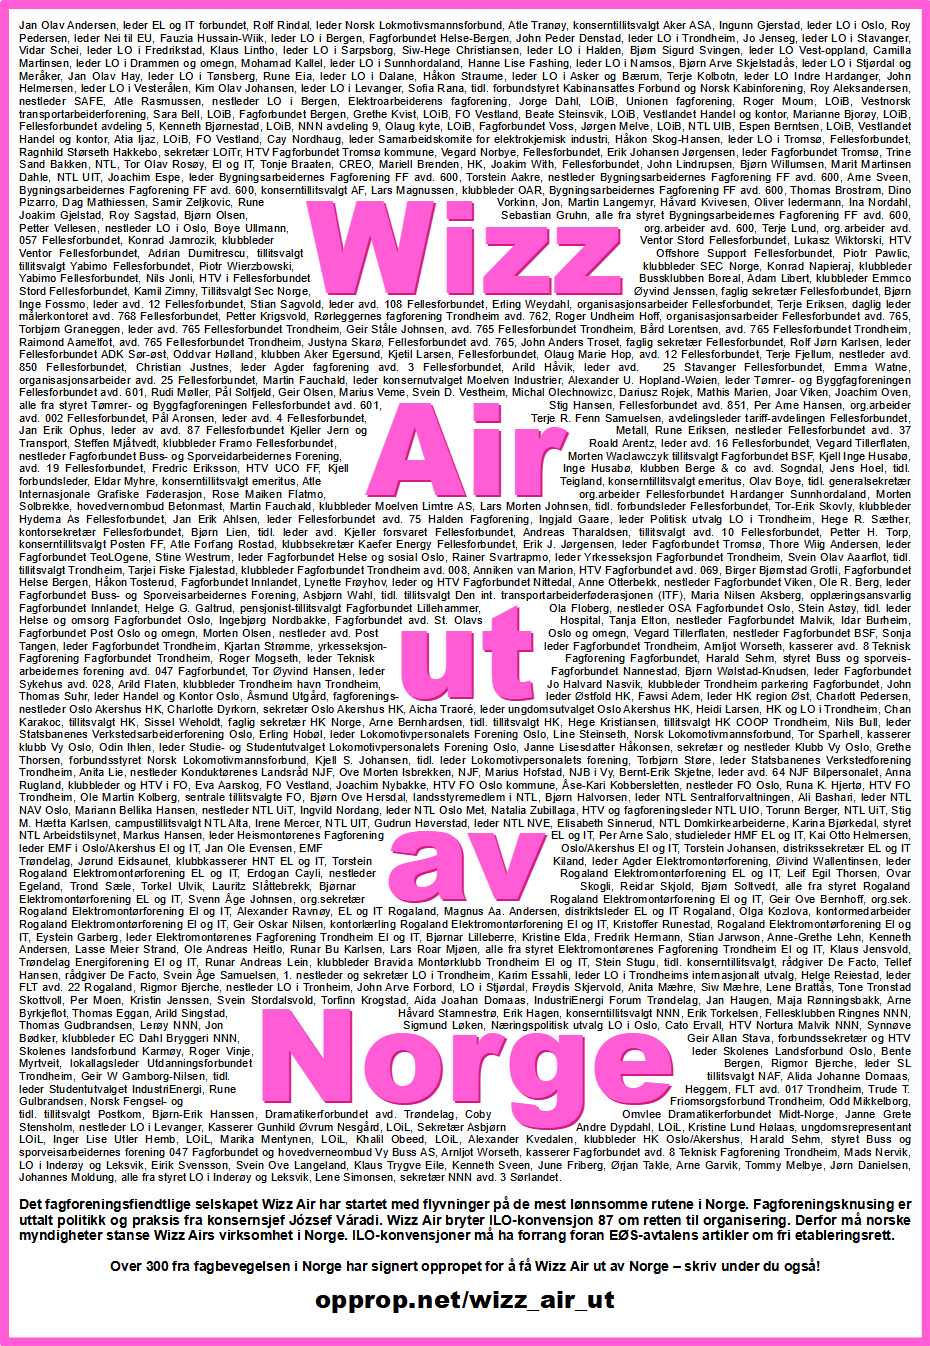 Wizz_Air-annonse.png